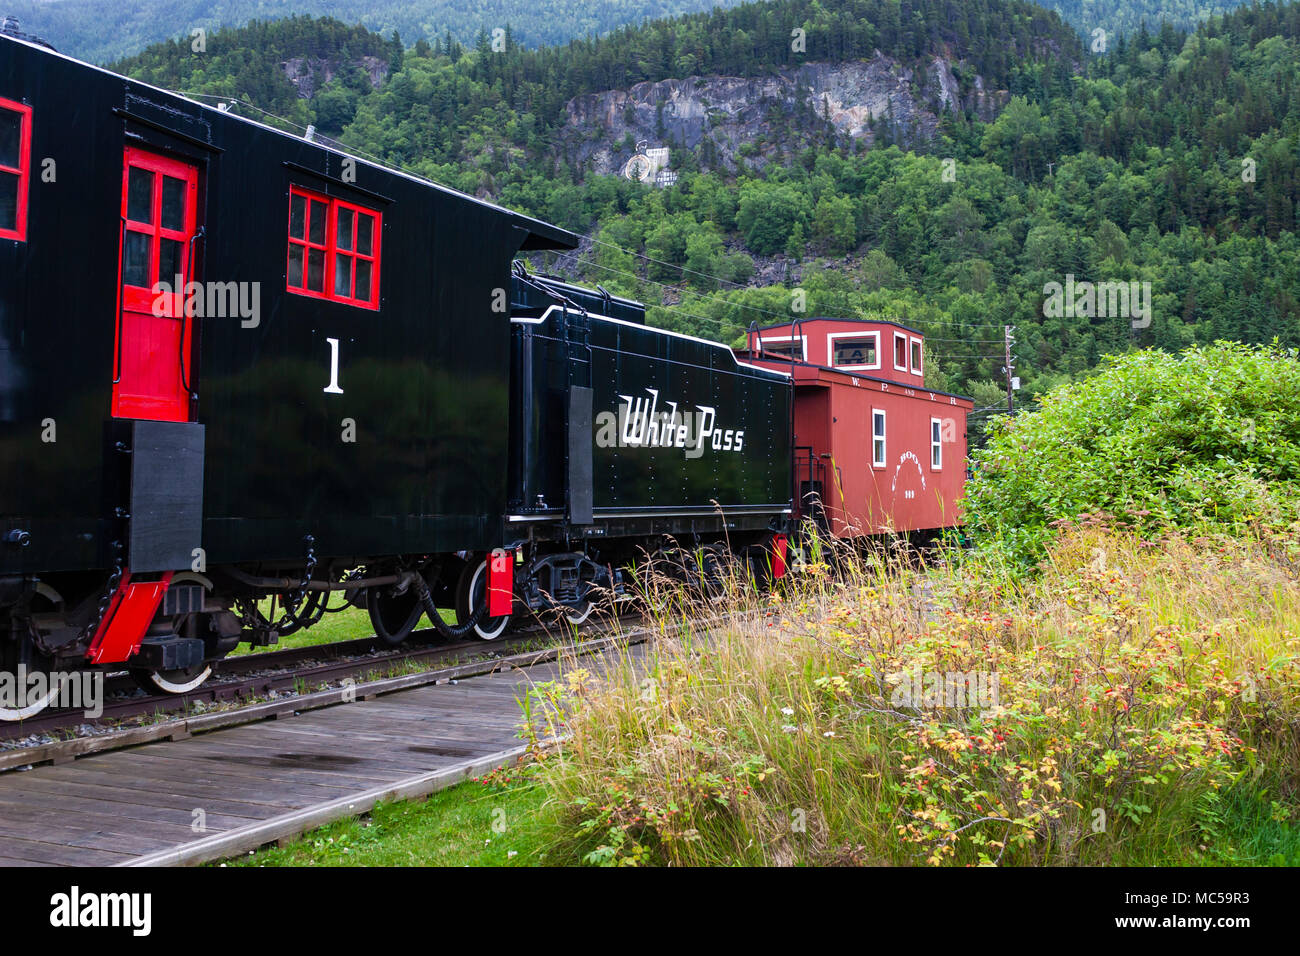 White Pass and Yukon train museum at Skagway, Alaska, port of call for Cruise Ships going to and from Alaska via the Inside Passage. - Stock Image